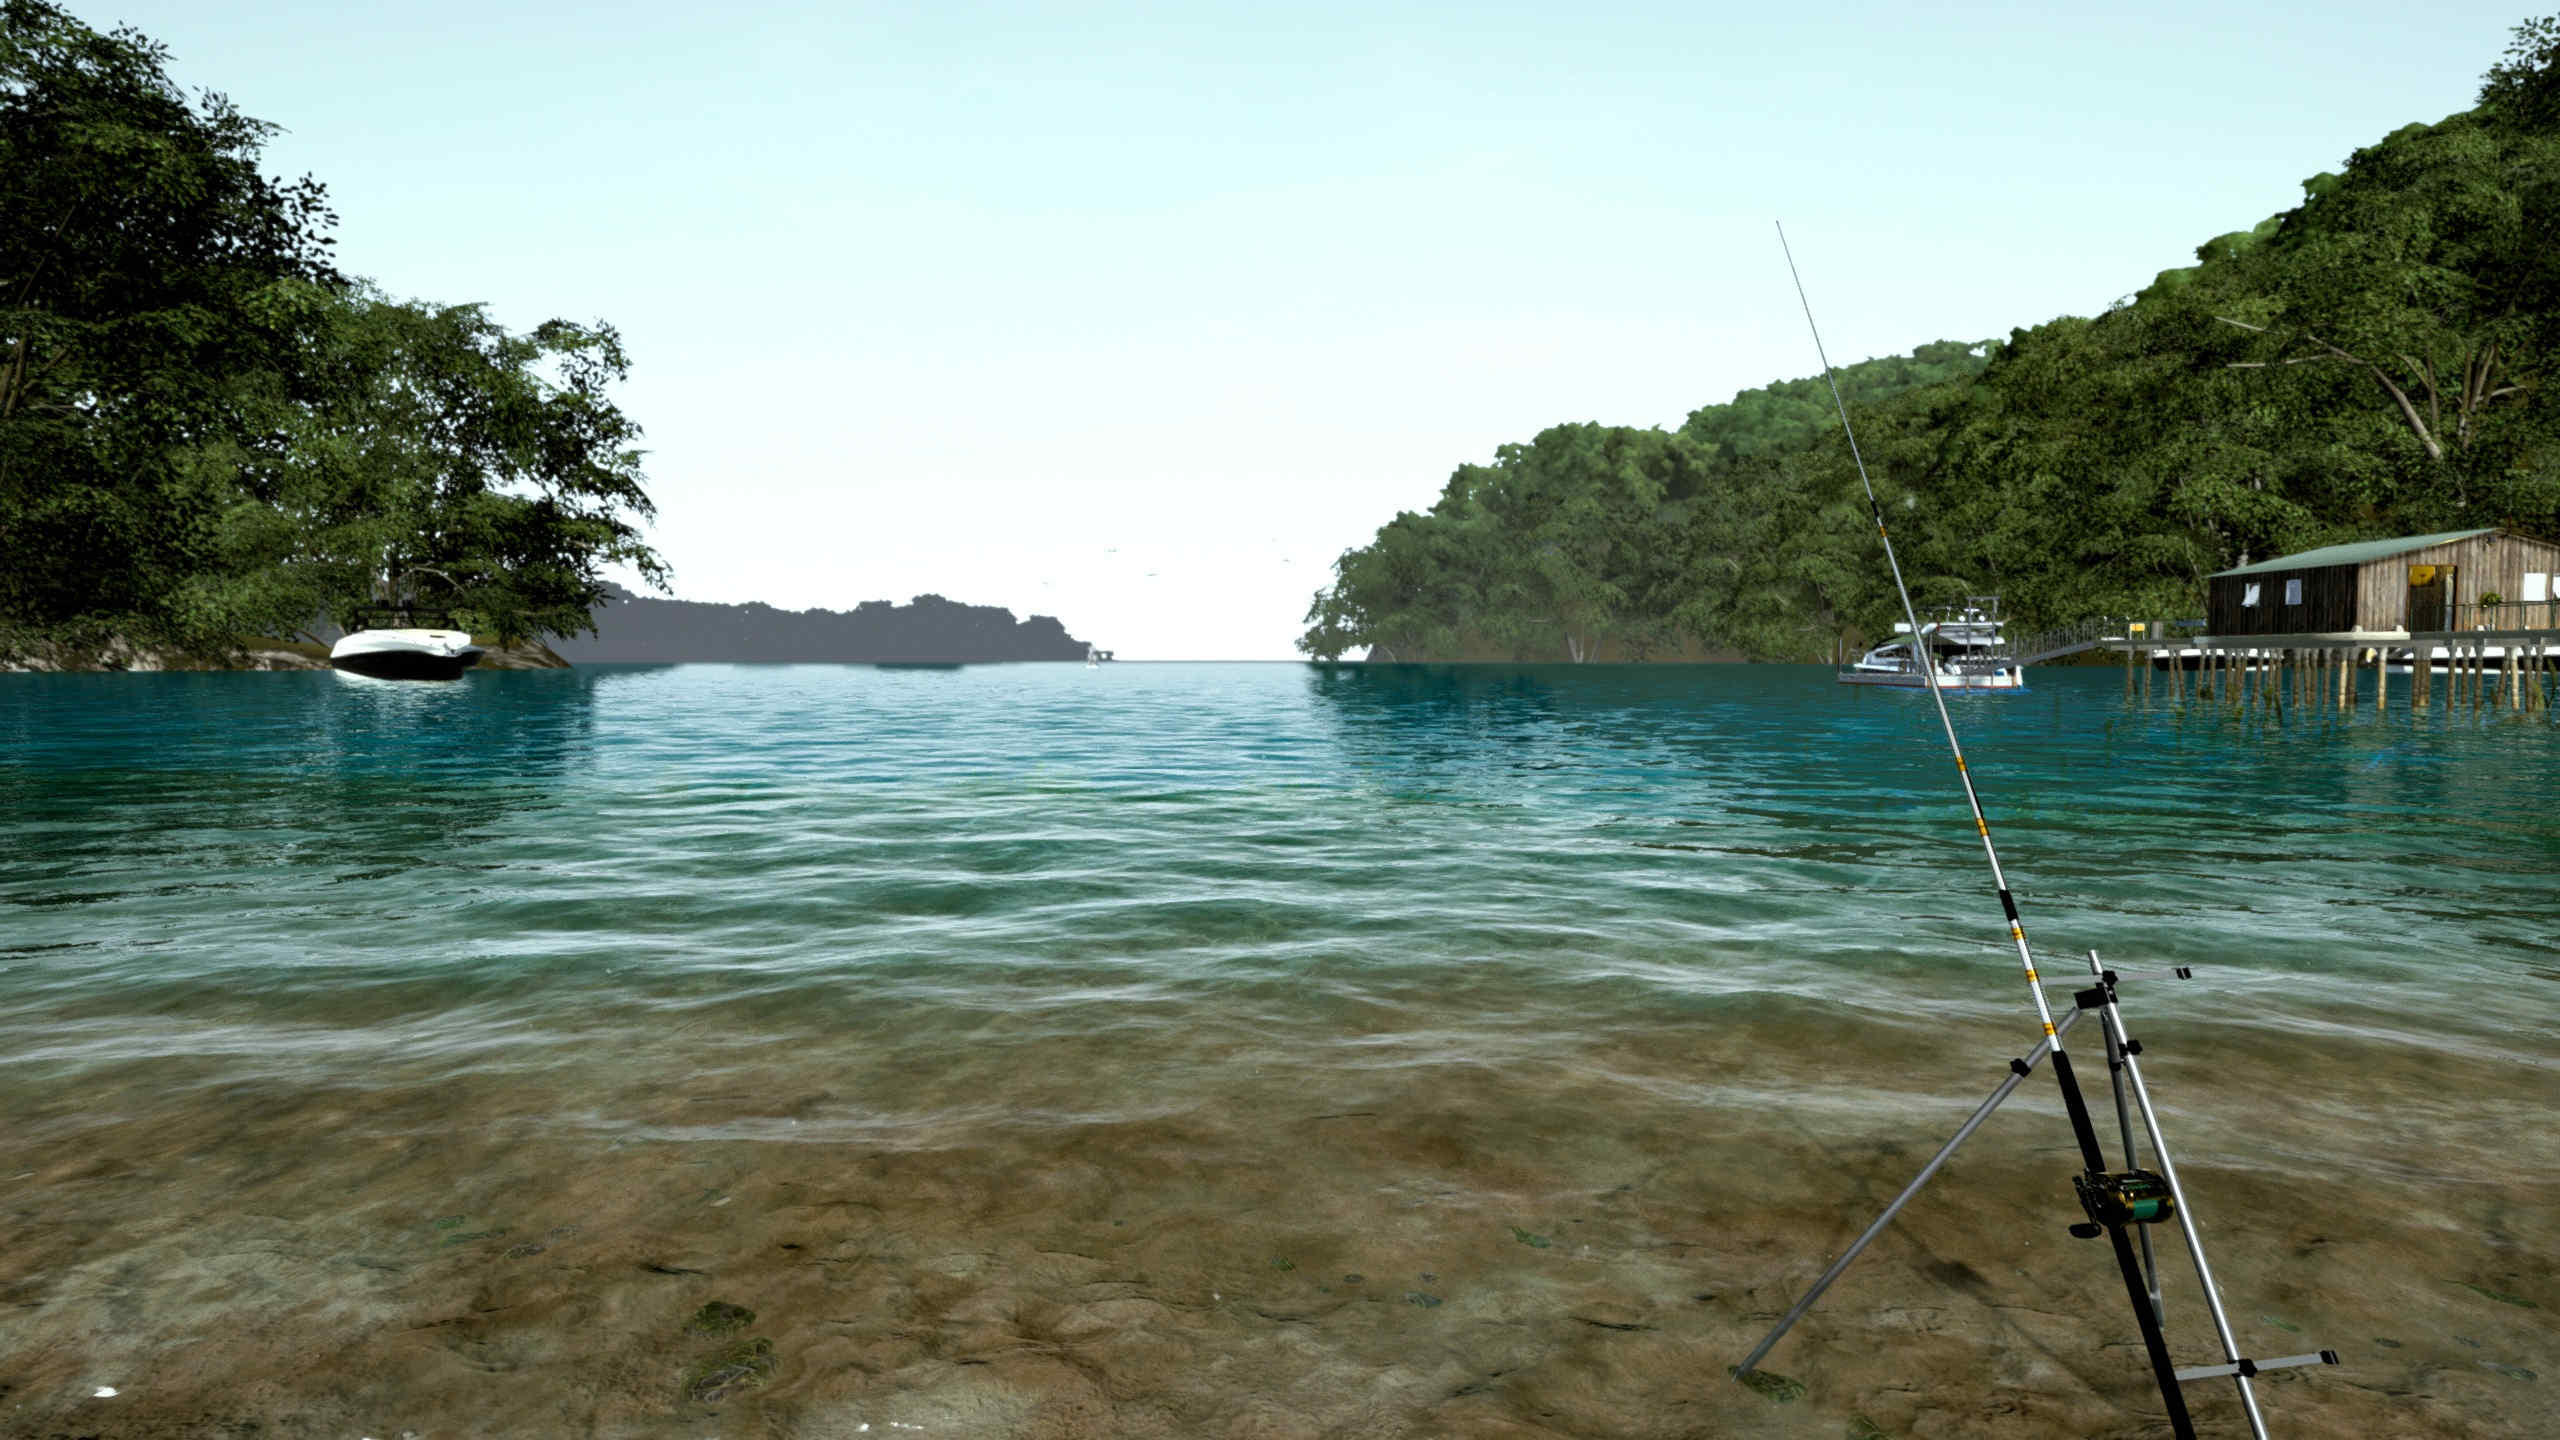 Best Fishing Games 2019 Ultimate Fishing Simulator is Coming to Consoles in 2019